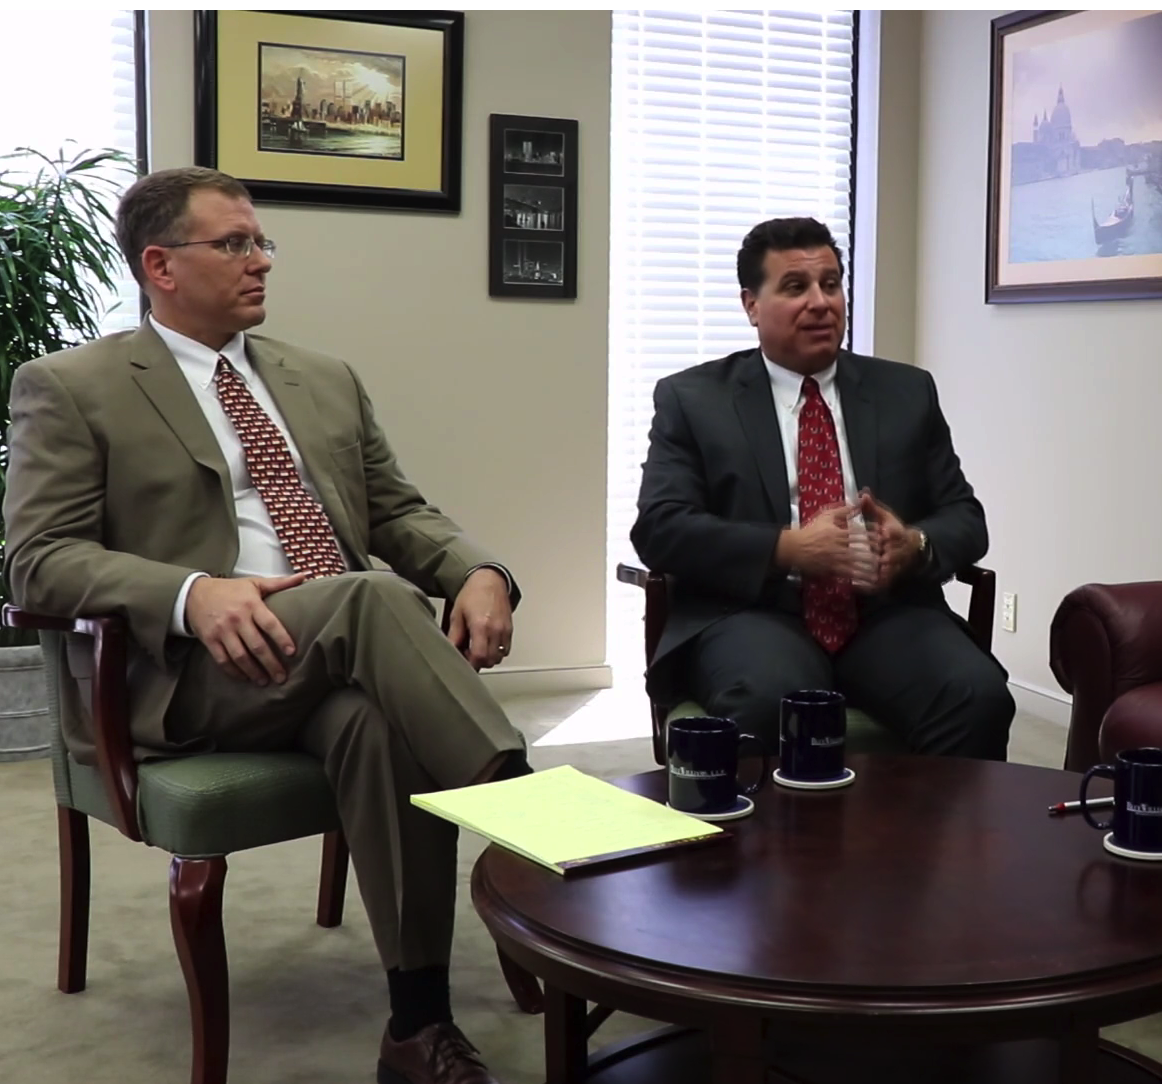 law firm video, New Orleans, Metairie, PerformLaw, Blue Williams, law firm consultant